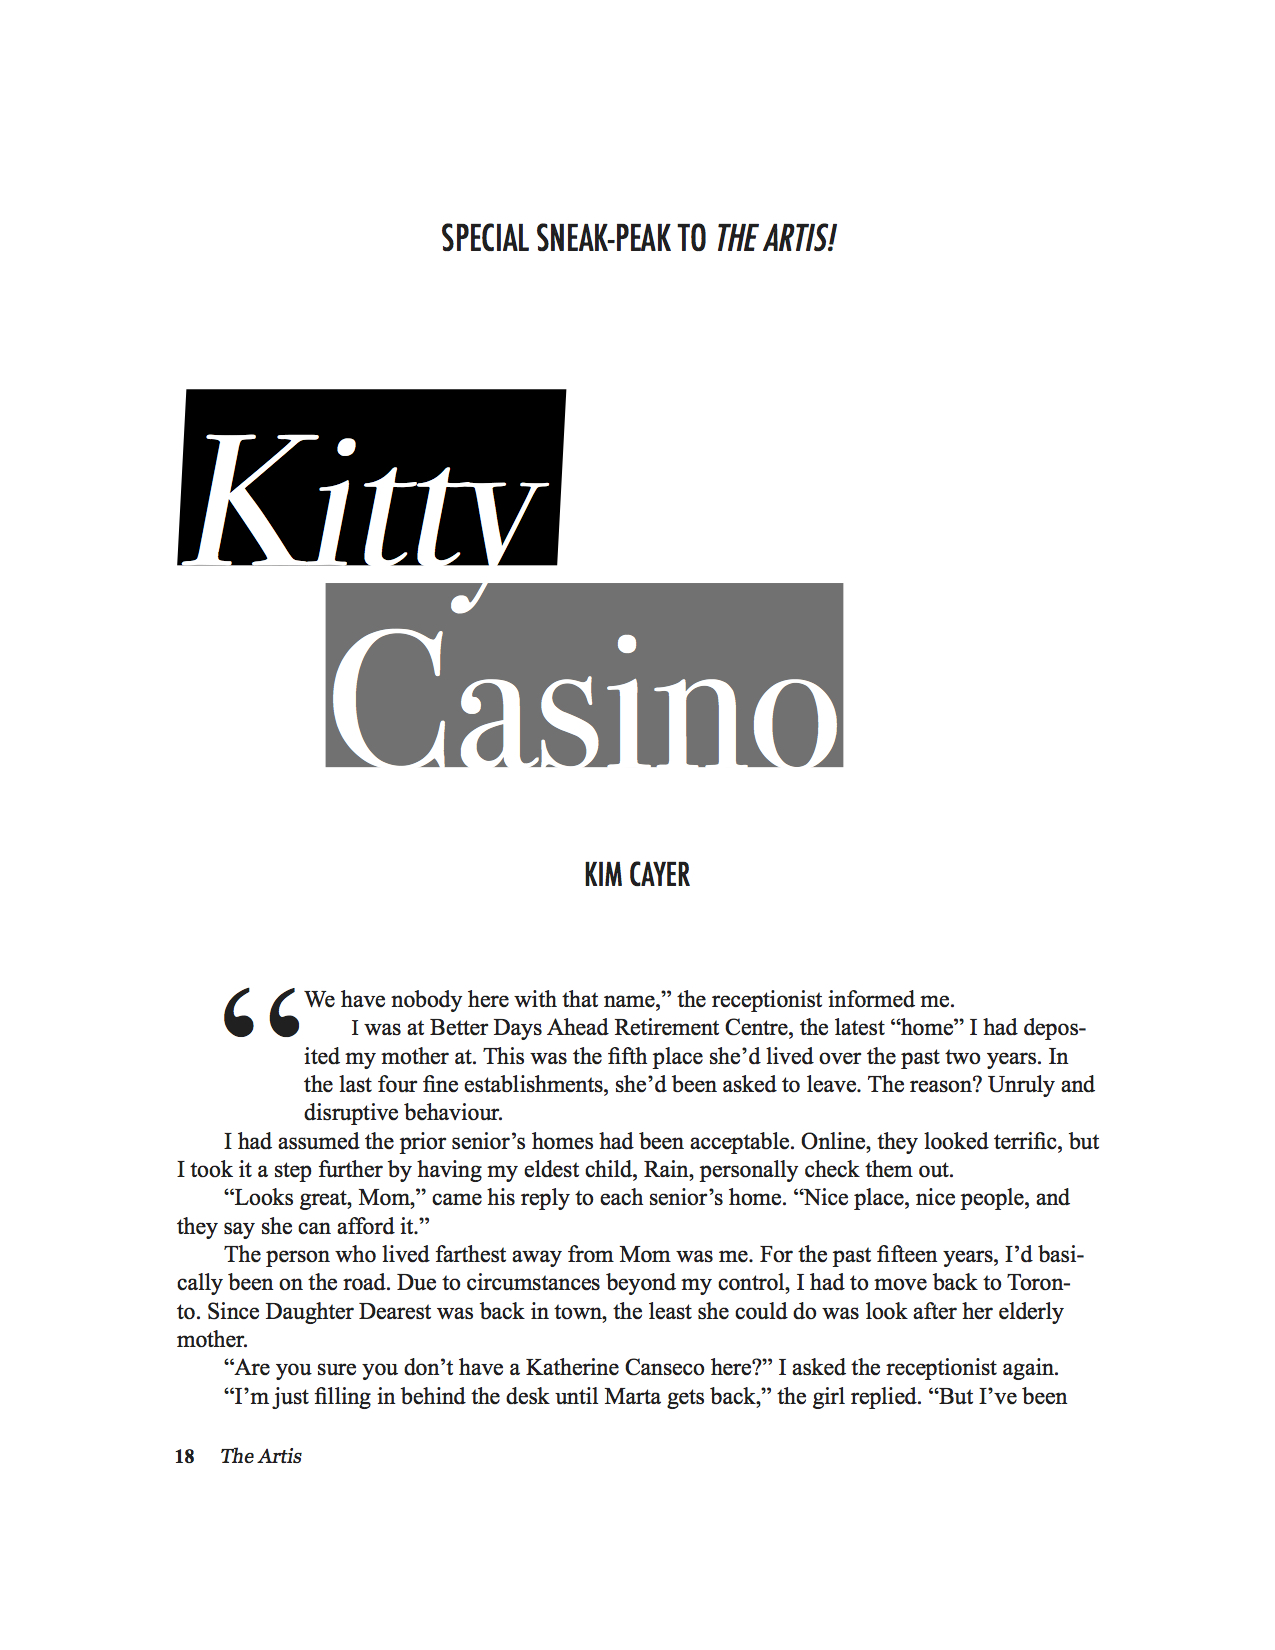 Artis 2 Kitty Casino 3 pages.jpg